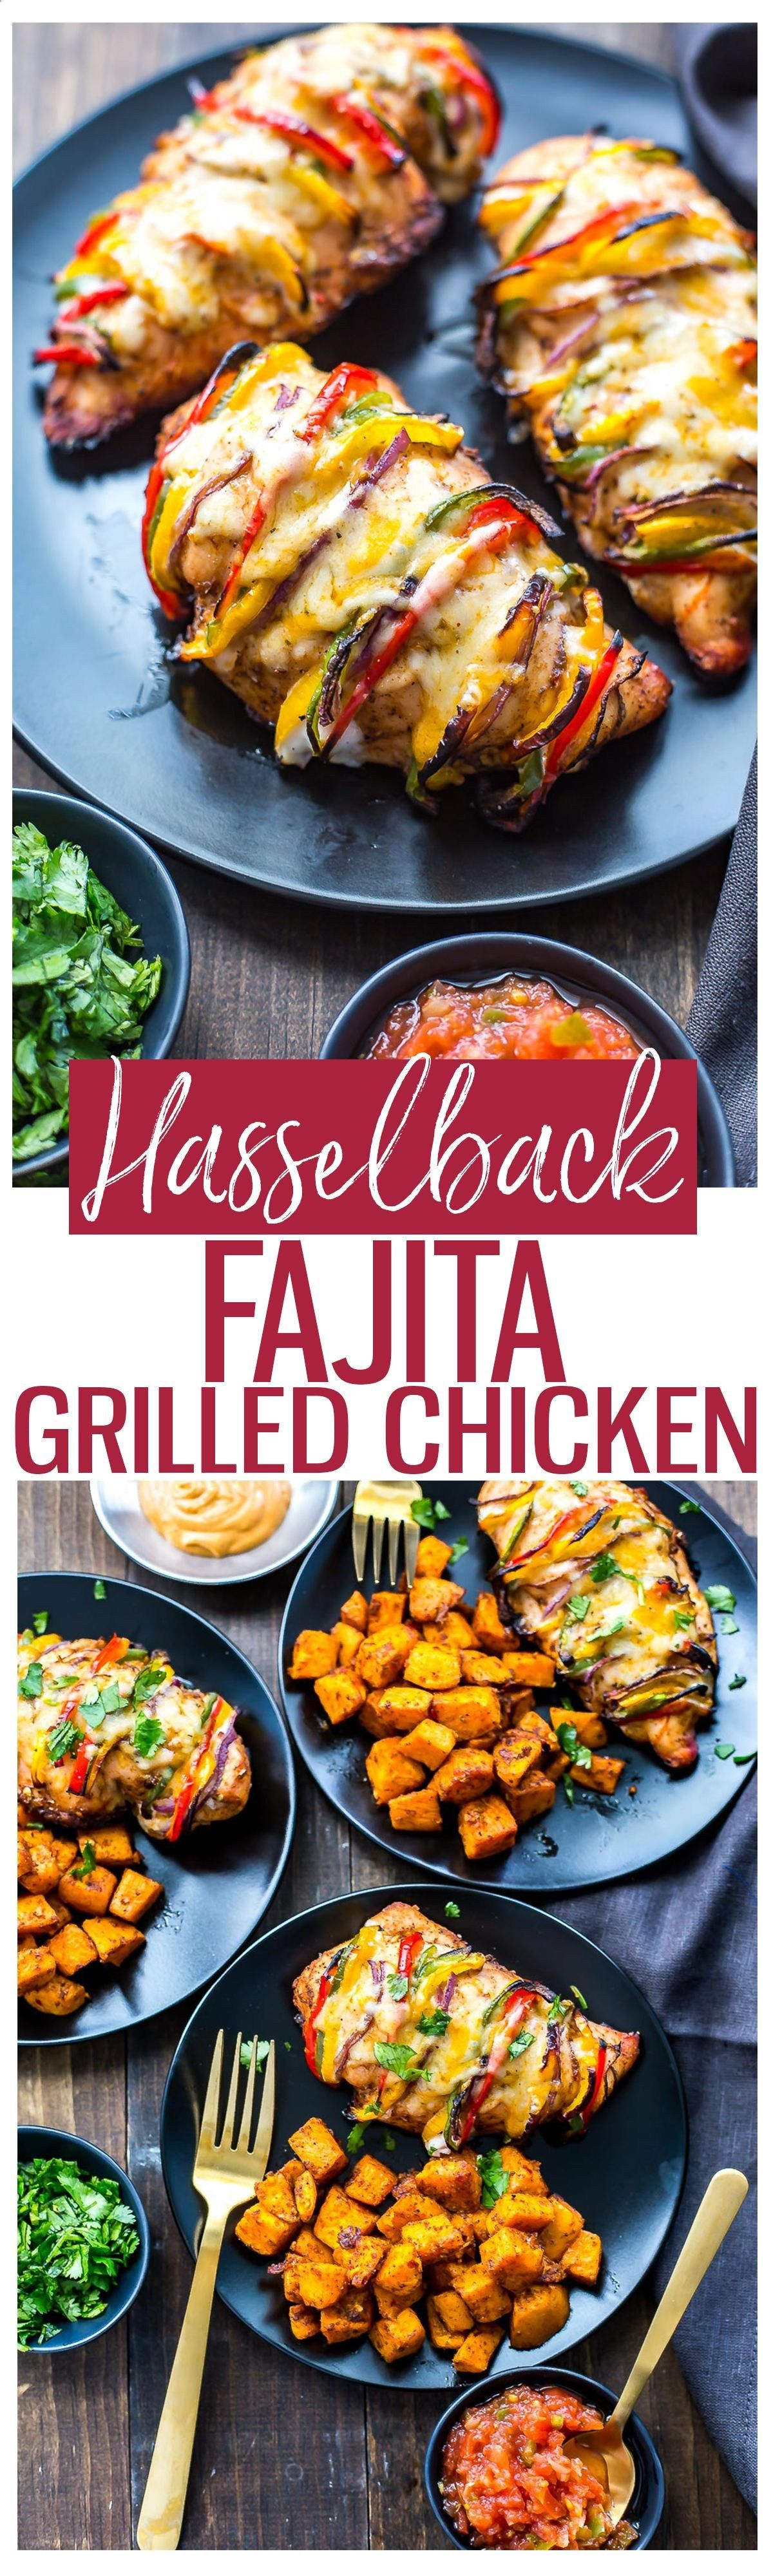 Grilled Hassleback Fajita Stuffed Chicken   Stuffed with bell peppers red onions   Gluten Free   Low Carb whole30 grilling recipes;grilling recipes dinner;grilling dishes;grilling recipes healthy;grilling recipes veggies;recipes for grilling;grilling tip;grilling healthy;grilling recipes easy;grilling onions;grilling recipes chicken;grilling recipes meat;grilling recipes sides;healthy grilling recipes;meat grilling recipes;healthy grilling;grilling chicken breastrecipes;grilling sides... #chickenbreastrecipeseasy